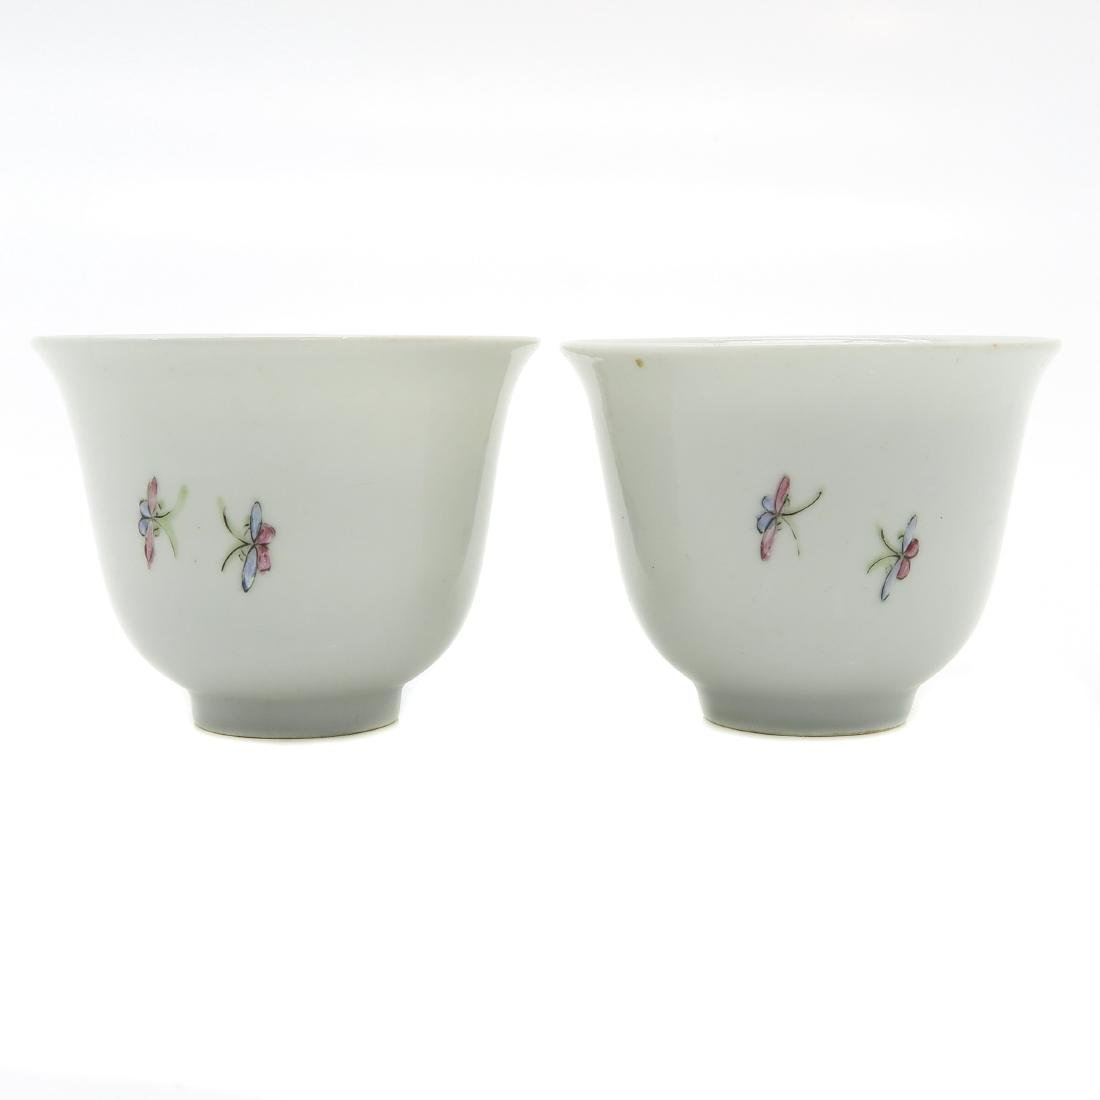 Lot of 2 Erotic Decor Cups - 3